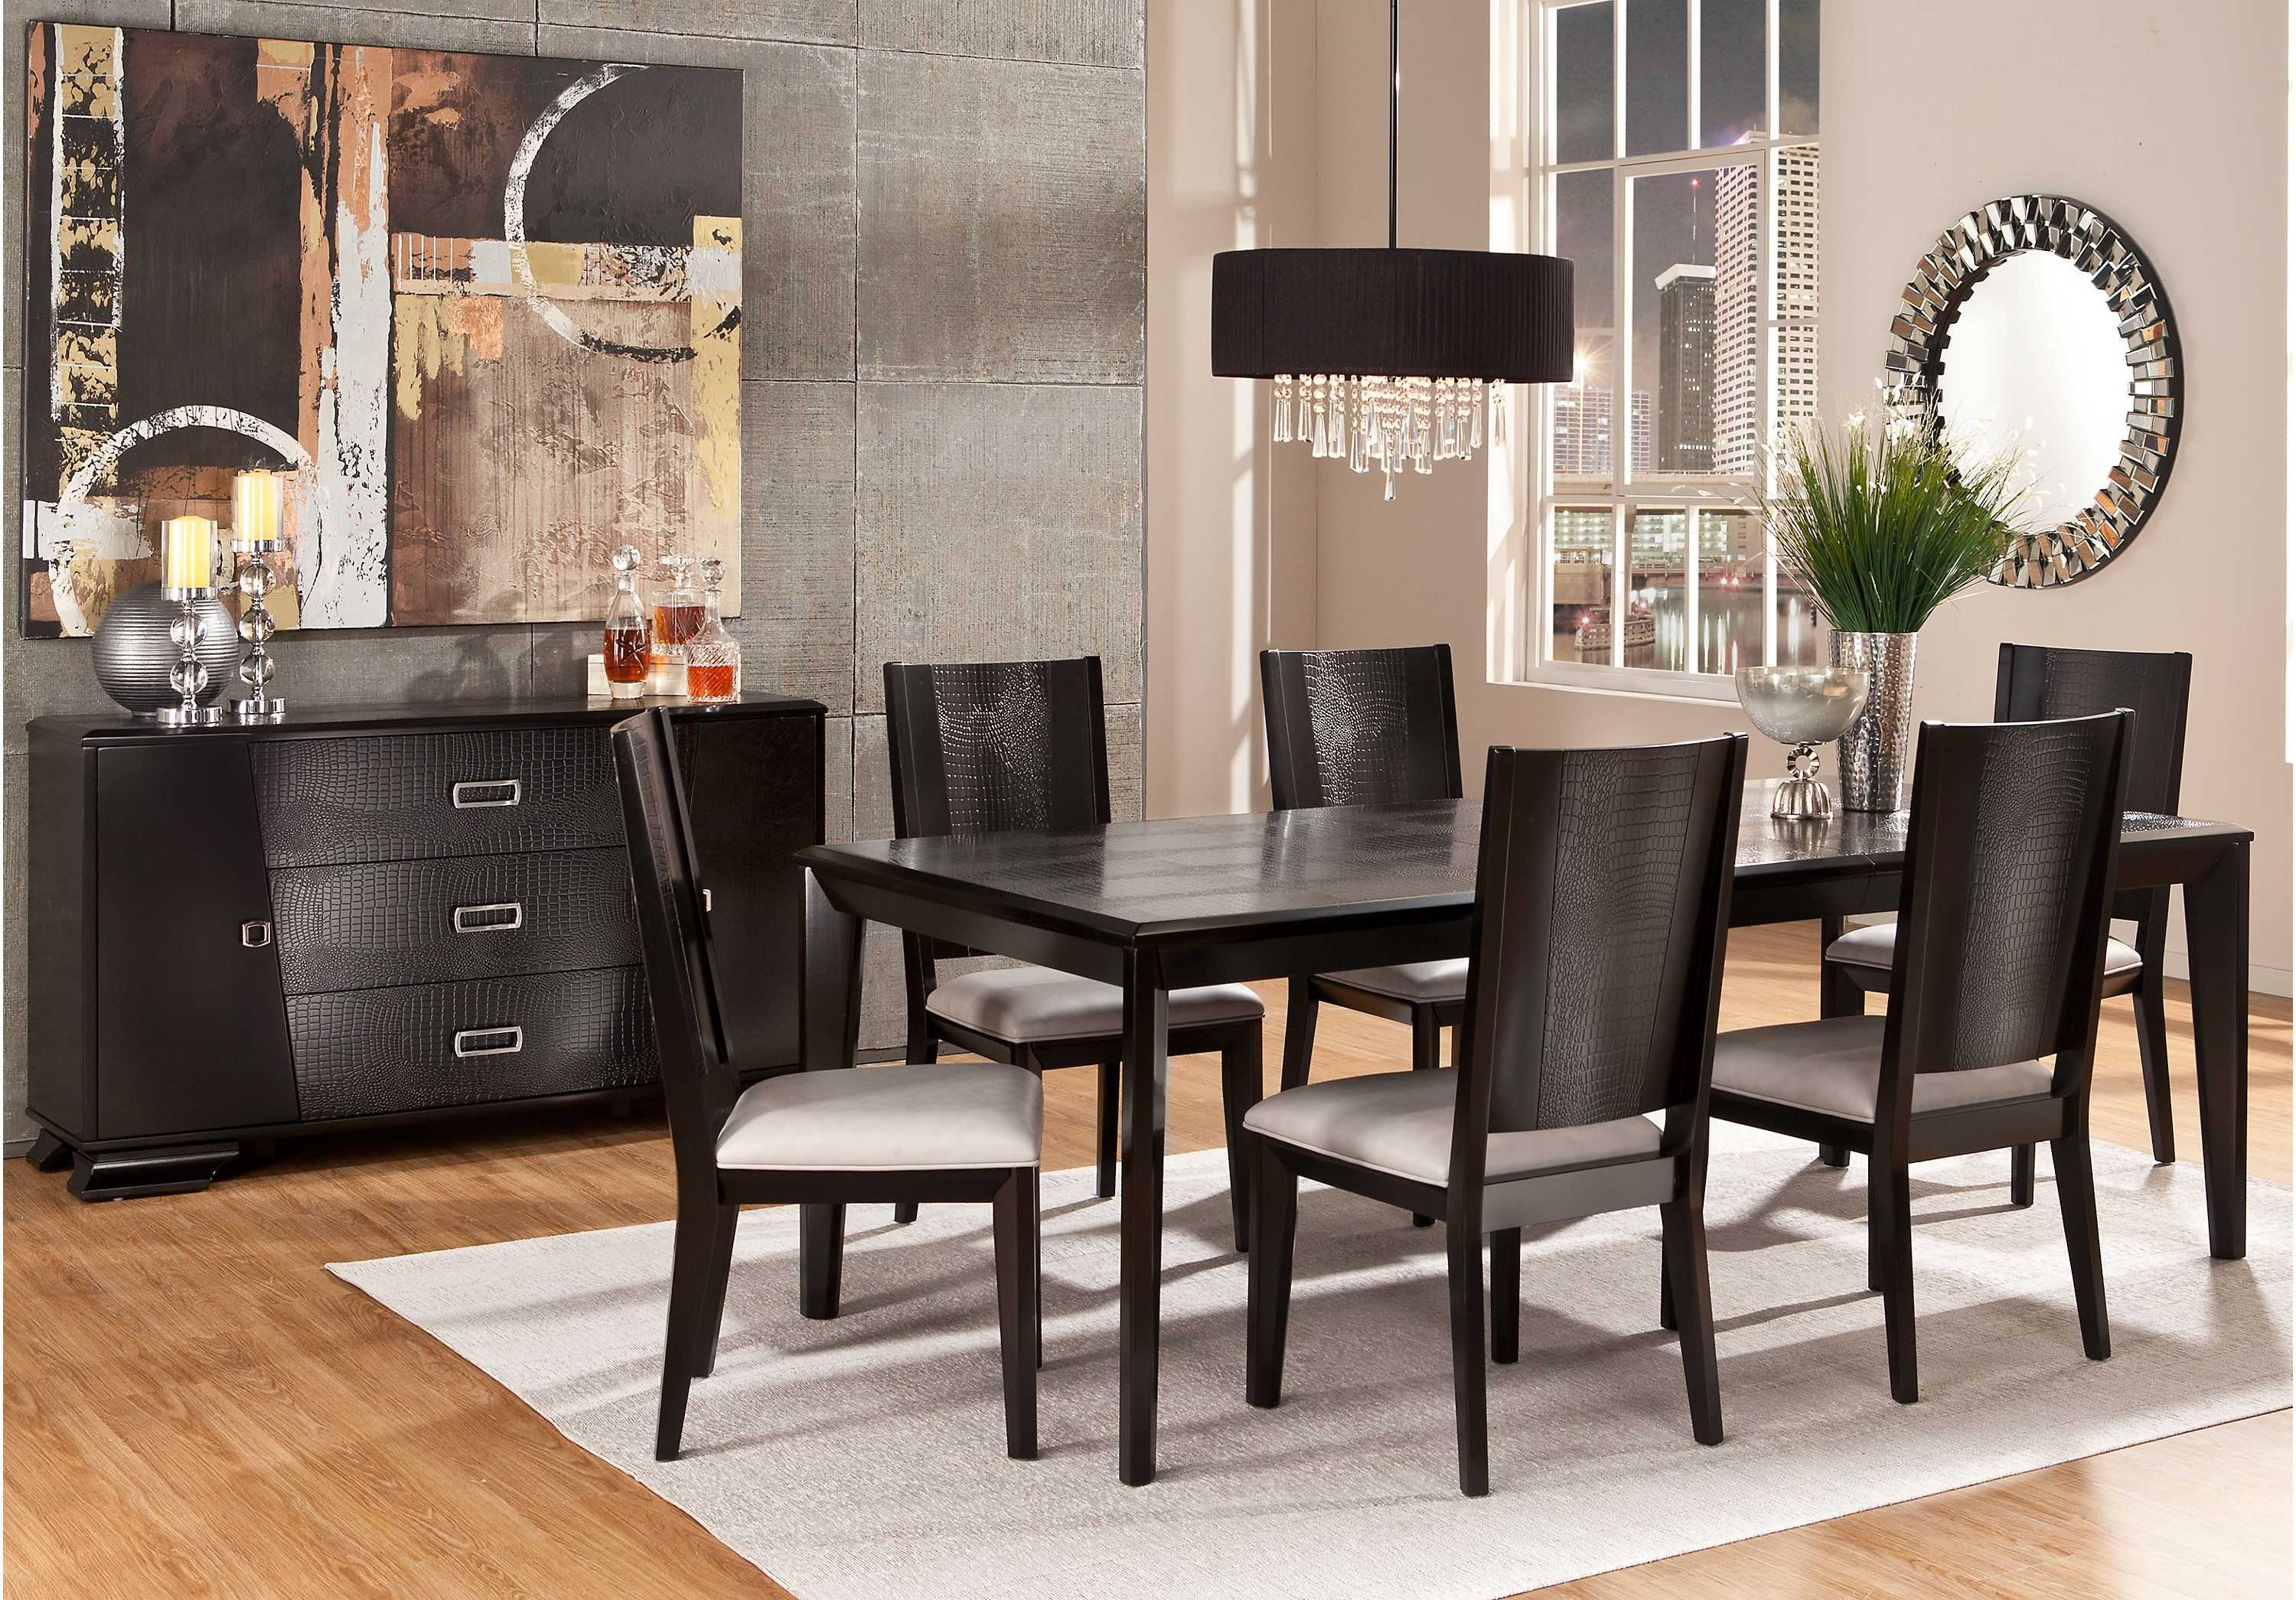 picture of Sofia Vergara Biscayne Black 5 Pc Rectangle Dining Room from Dining Room Sets F ...